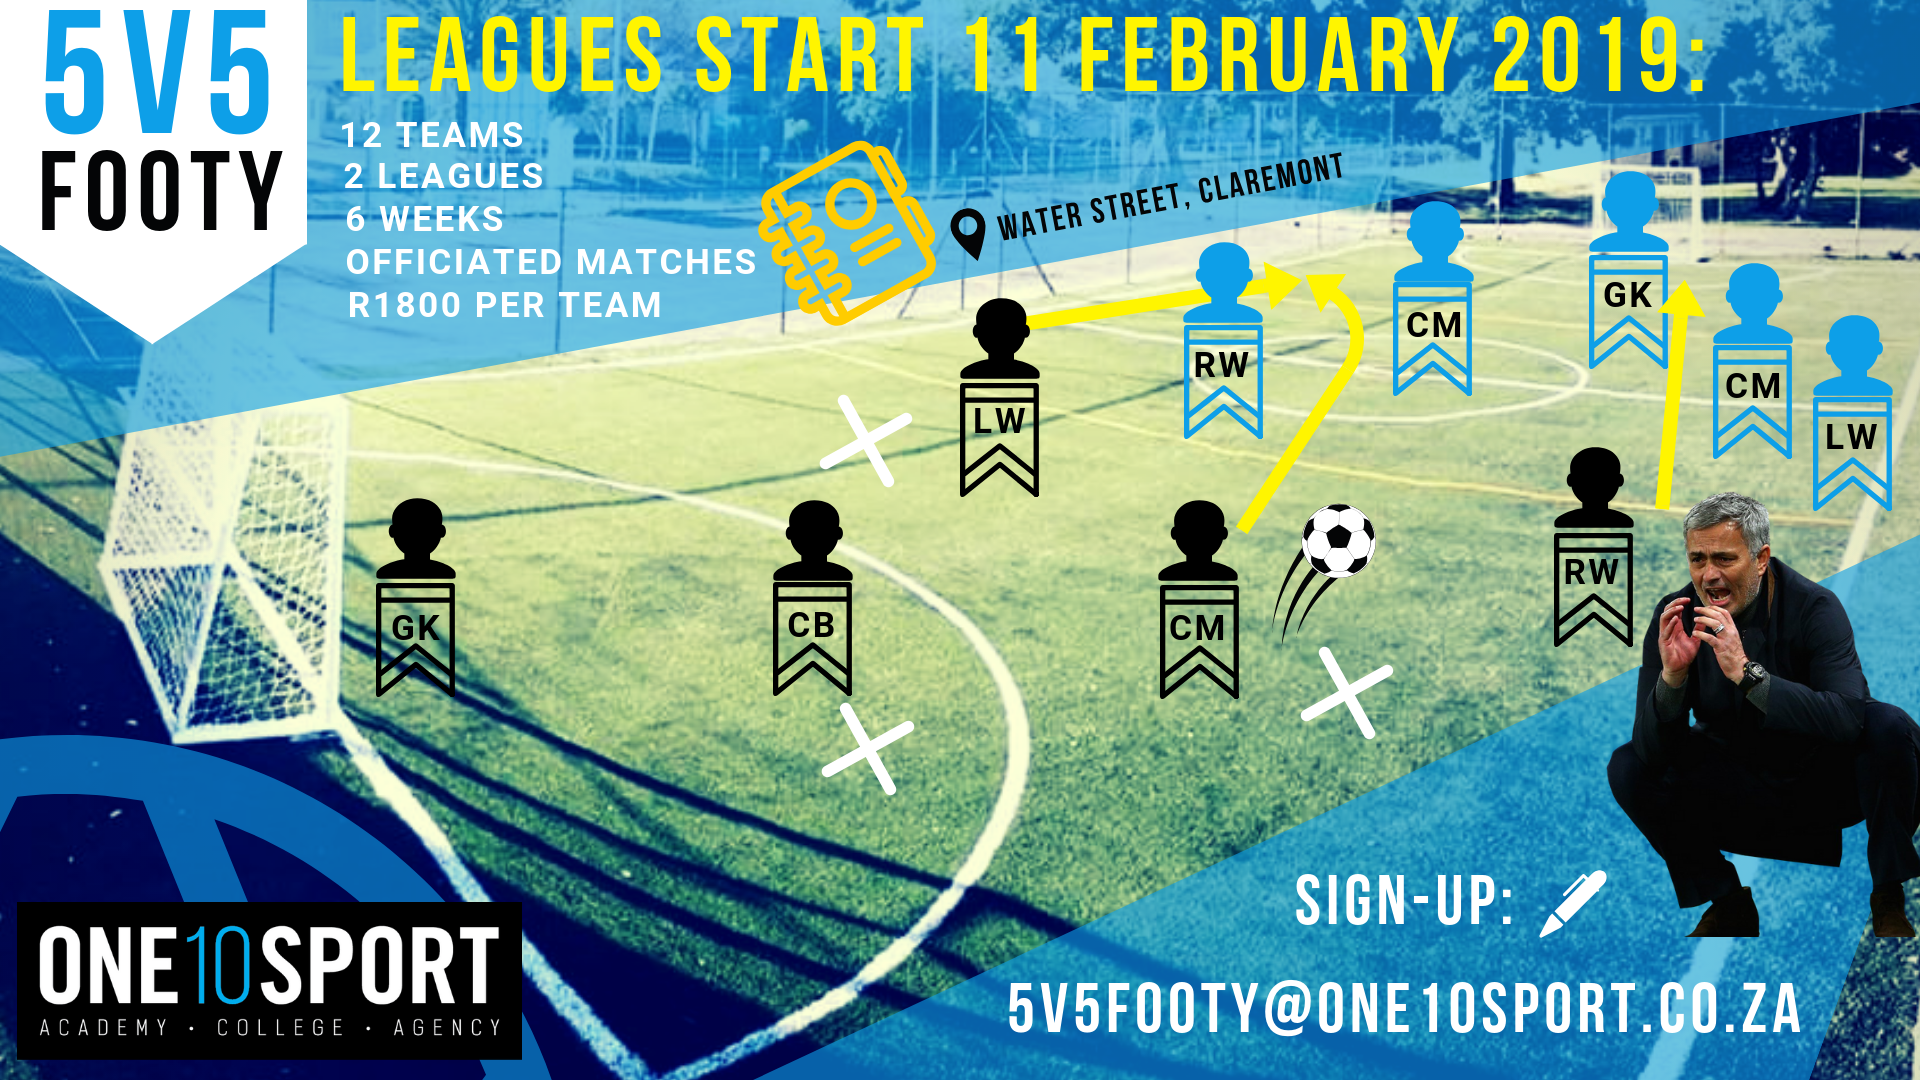 Five-a-side Football Leagues in the Southern Suburbs: Cape Town